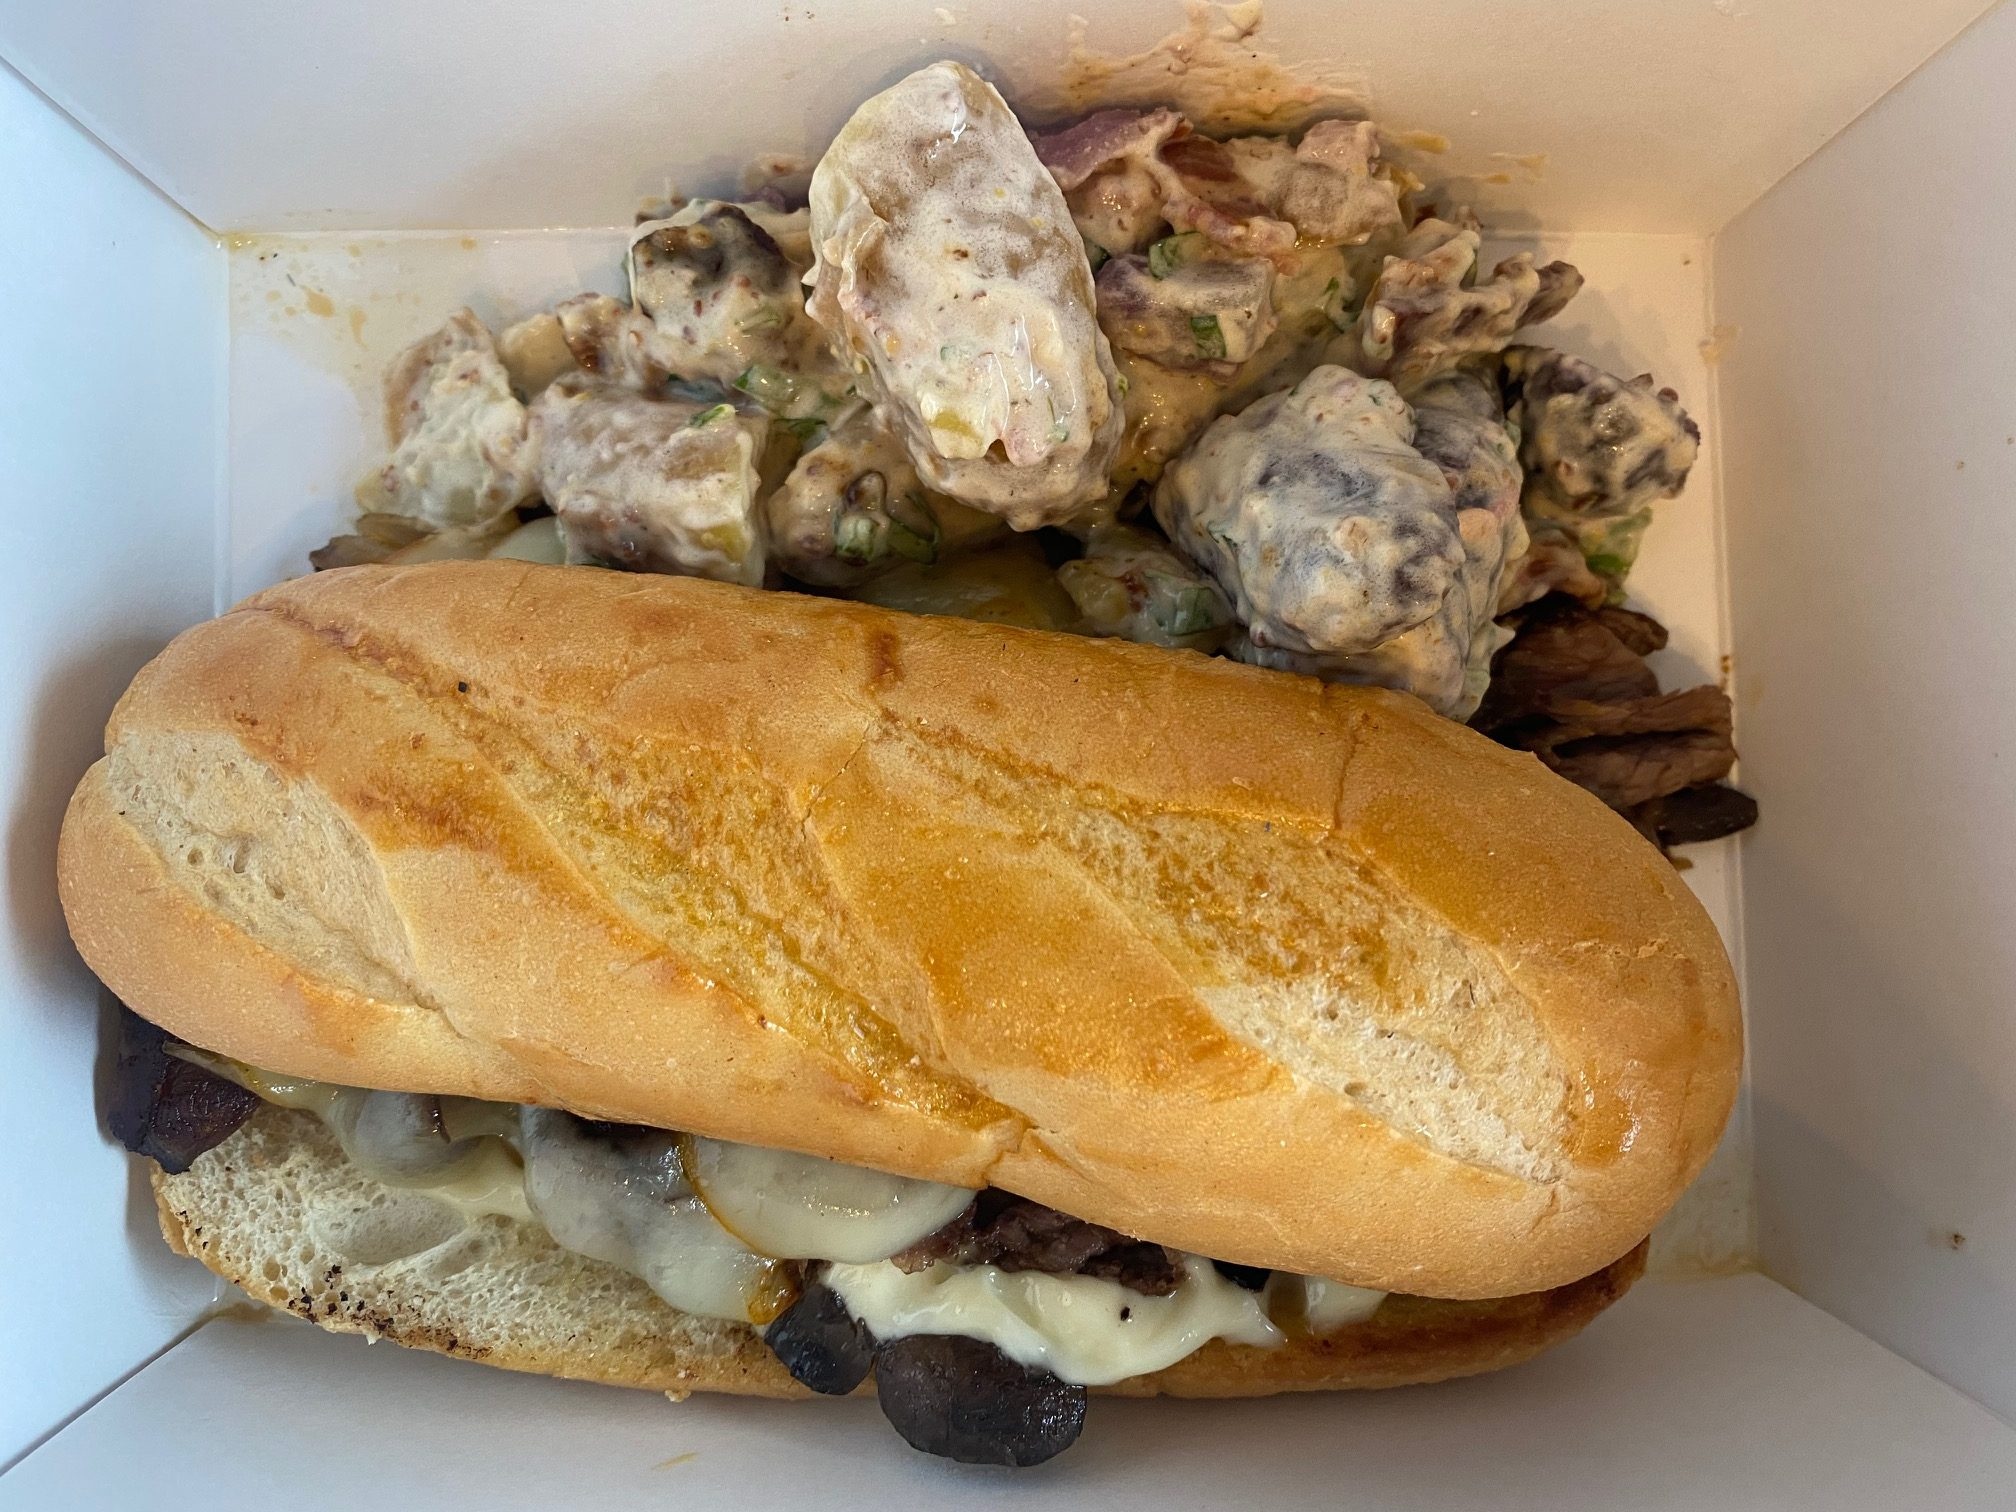 The French dip with bacon potato salad